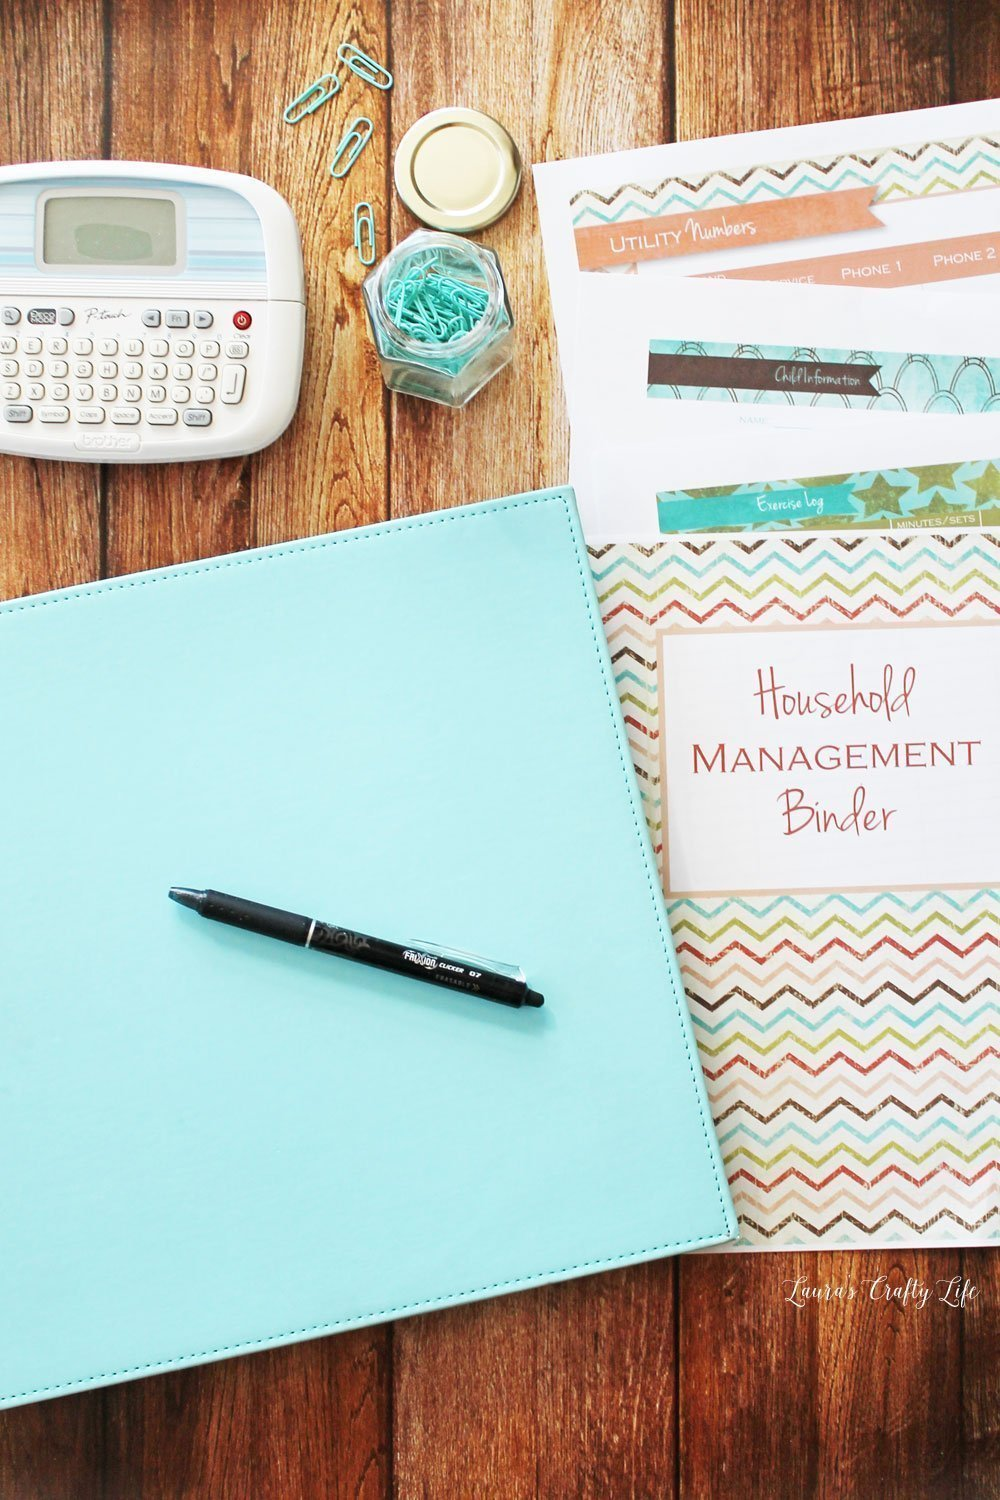 How to set up a Home Management Binder. Get your home under control with a home management binder. Tons of free printables to get you started! #freeprintables #laurascraftylife #homemanagementbinder